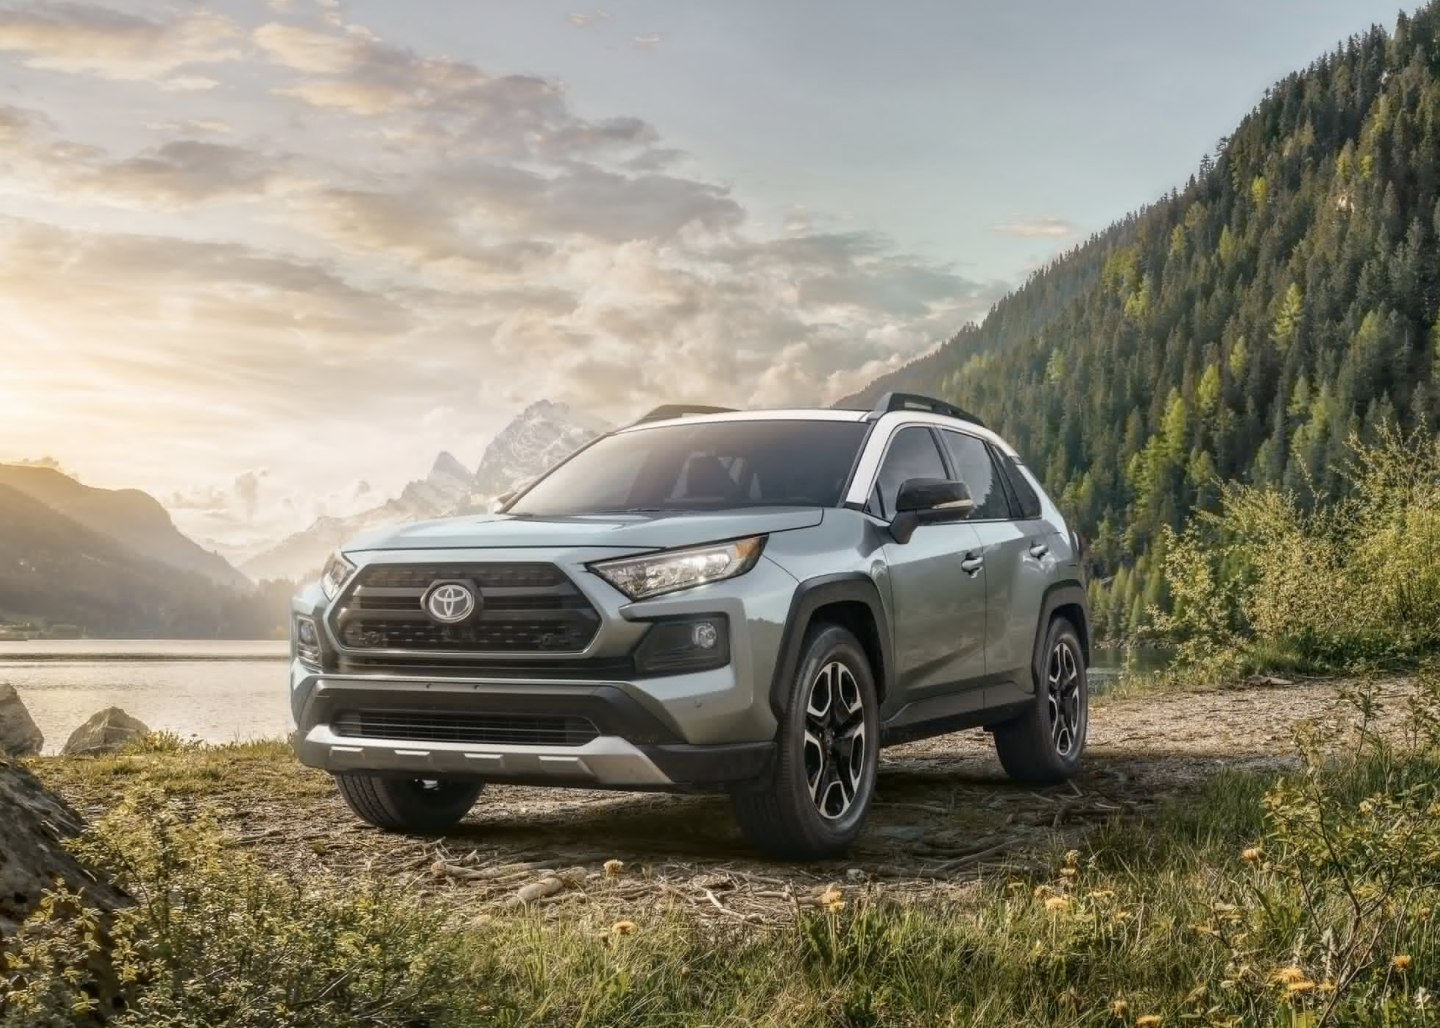 2020 Toyota RAV4 for Sale in Atlanta